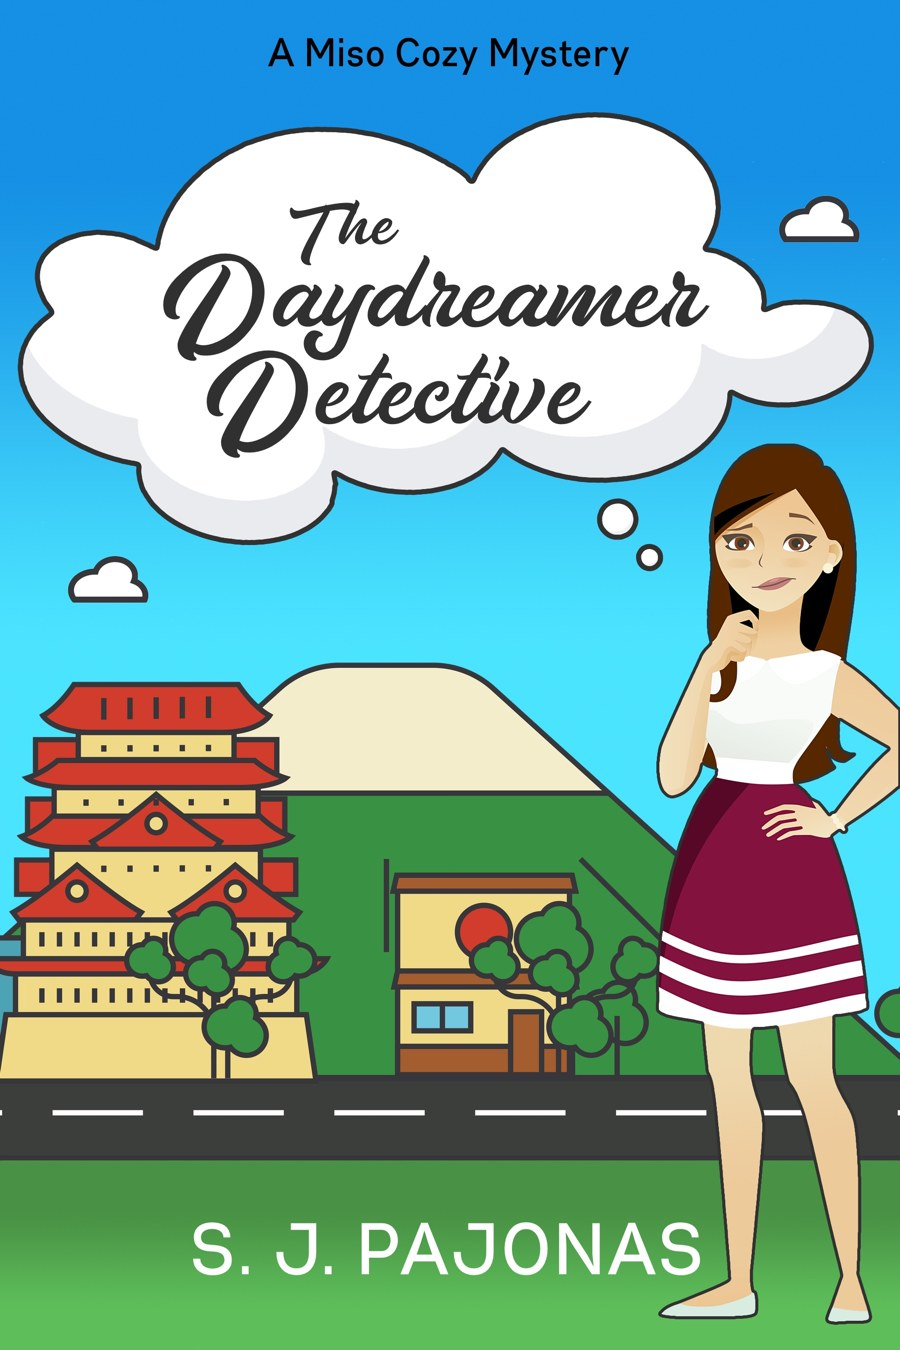 The Daydreamer Detective